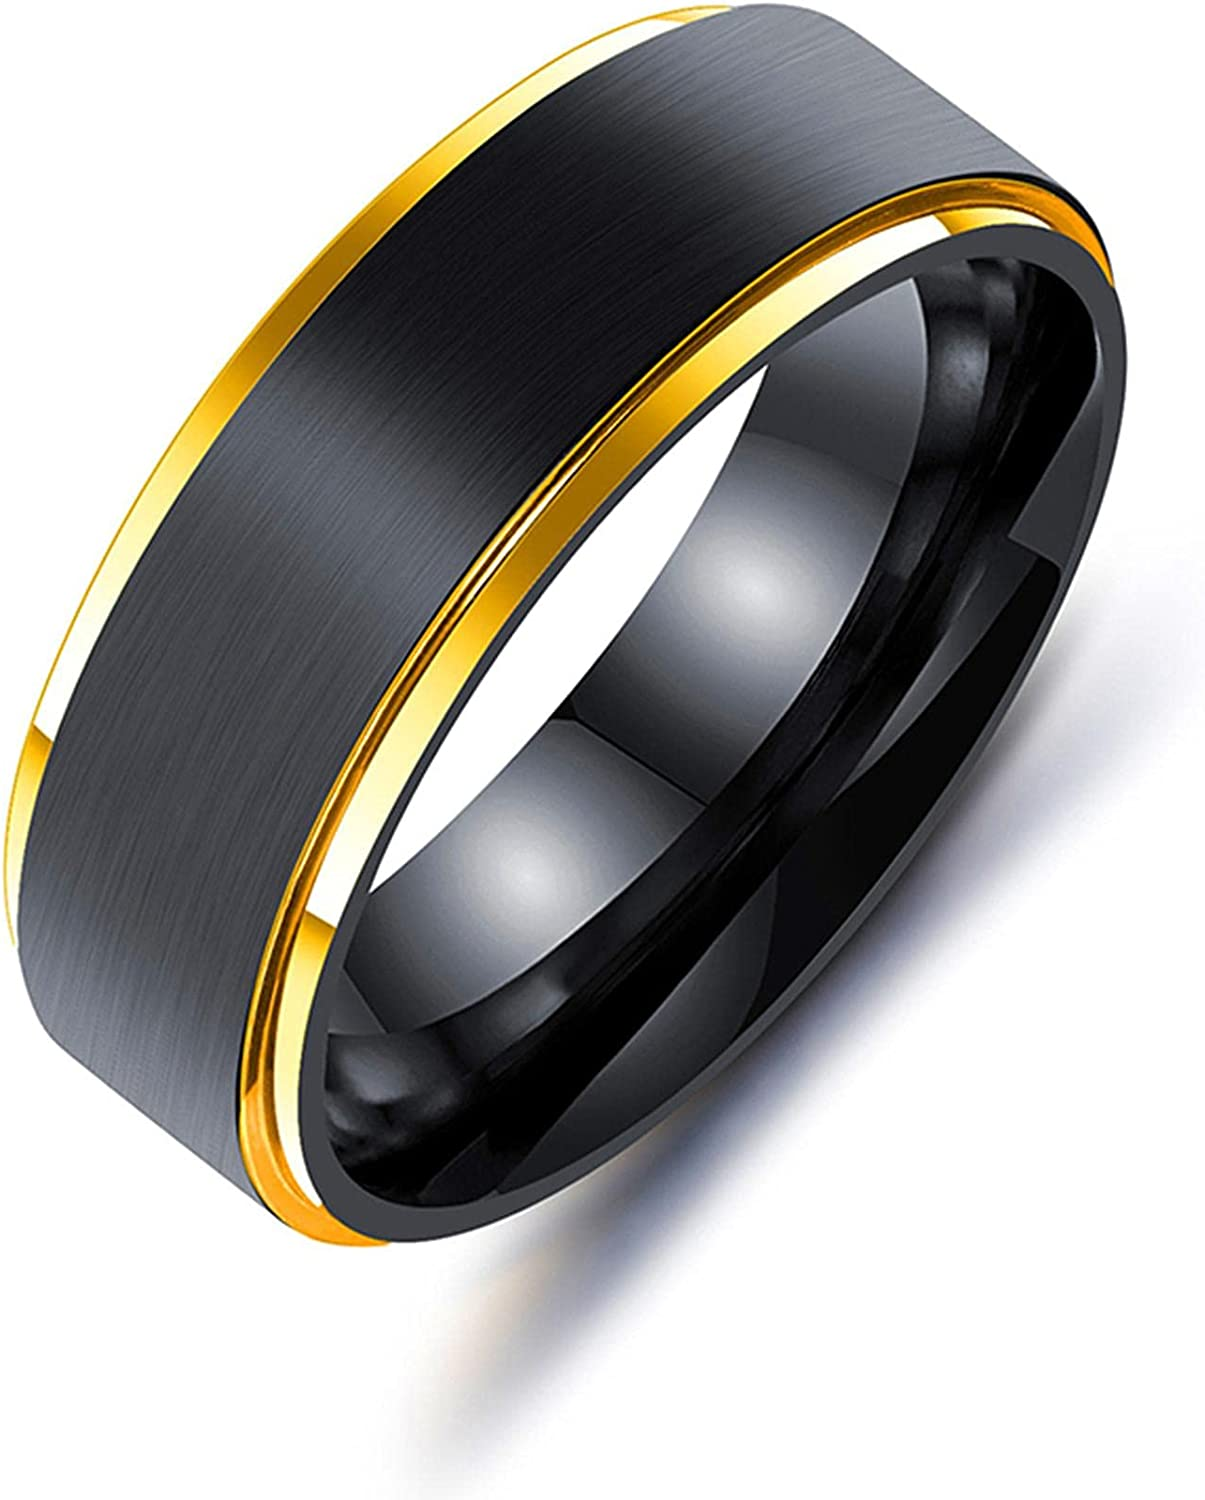 8mm Rainbow Colorful New sales Tungsten Carbide Ring Ranking TOP4 Black Brushed Wedding